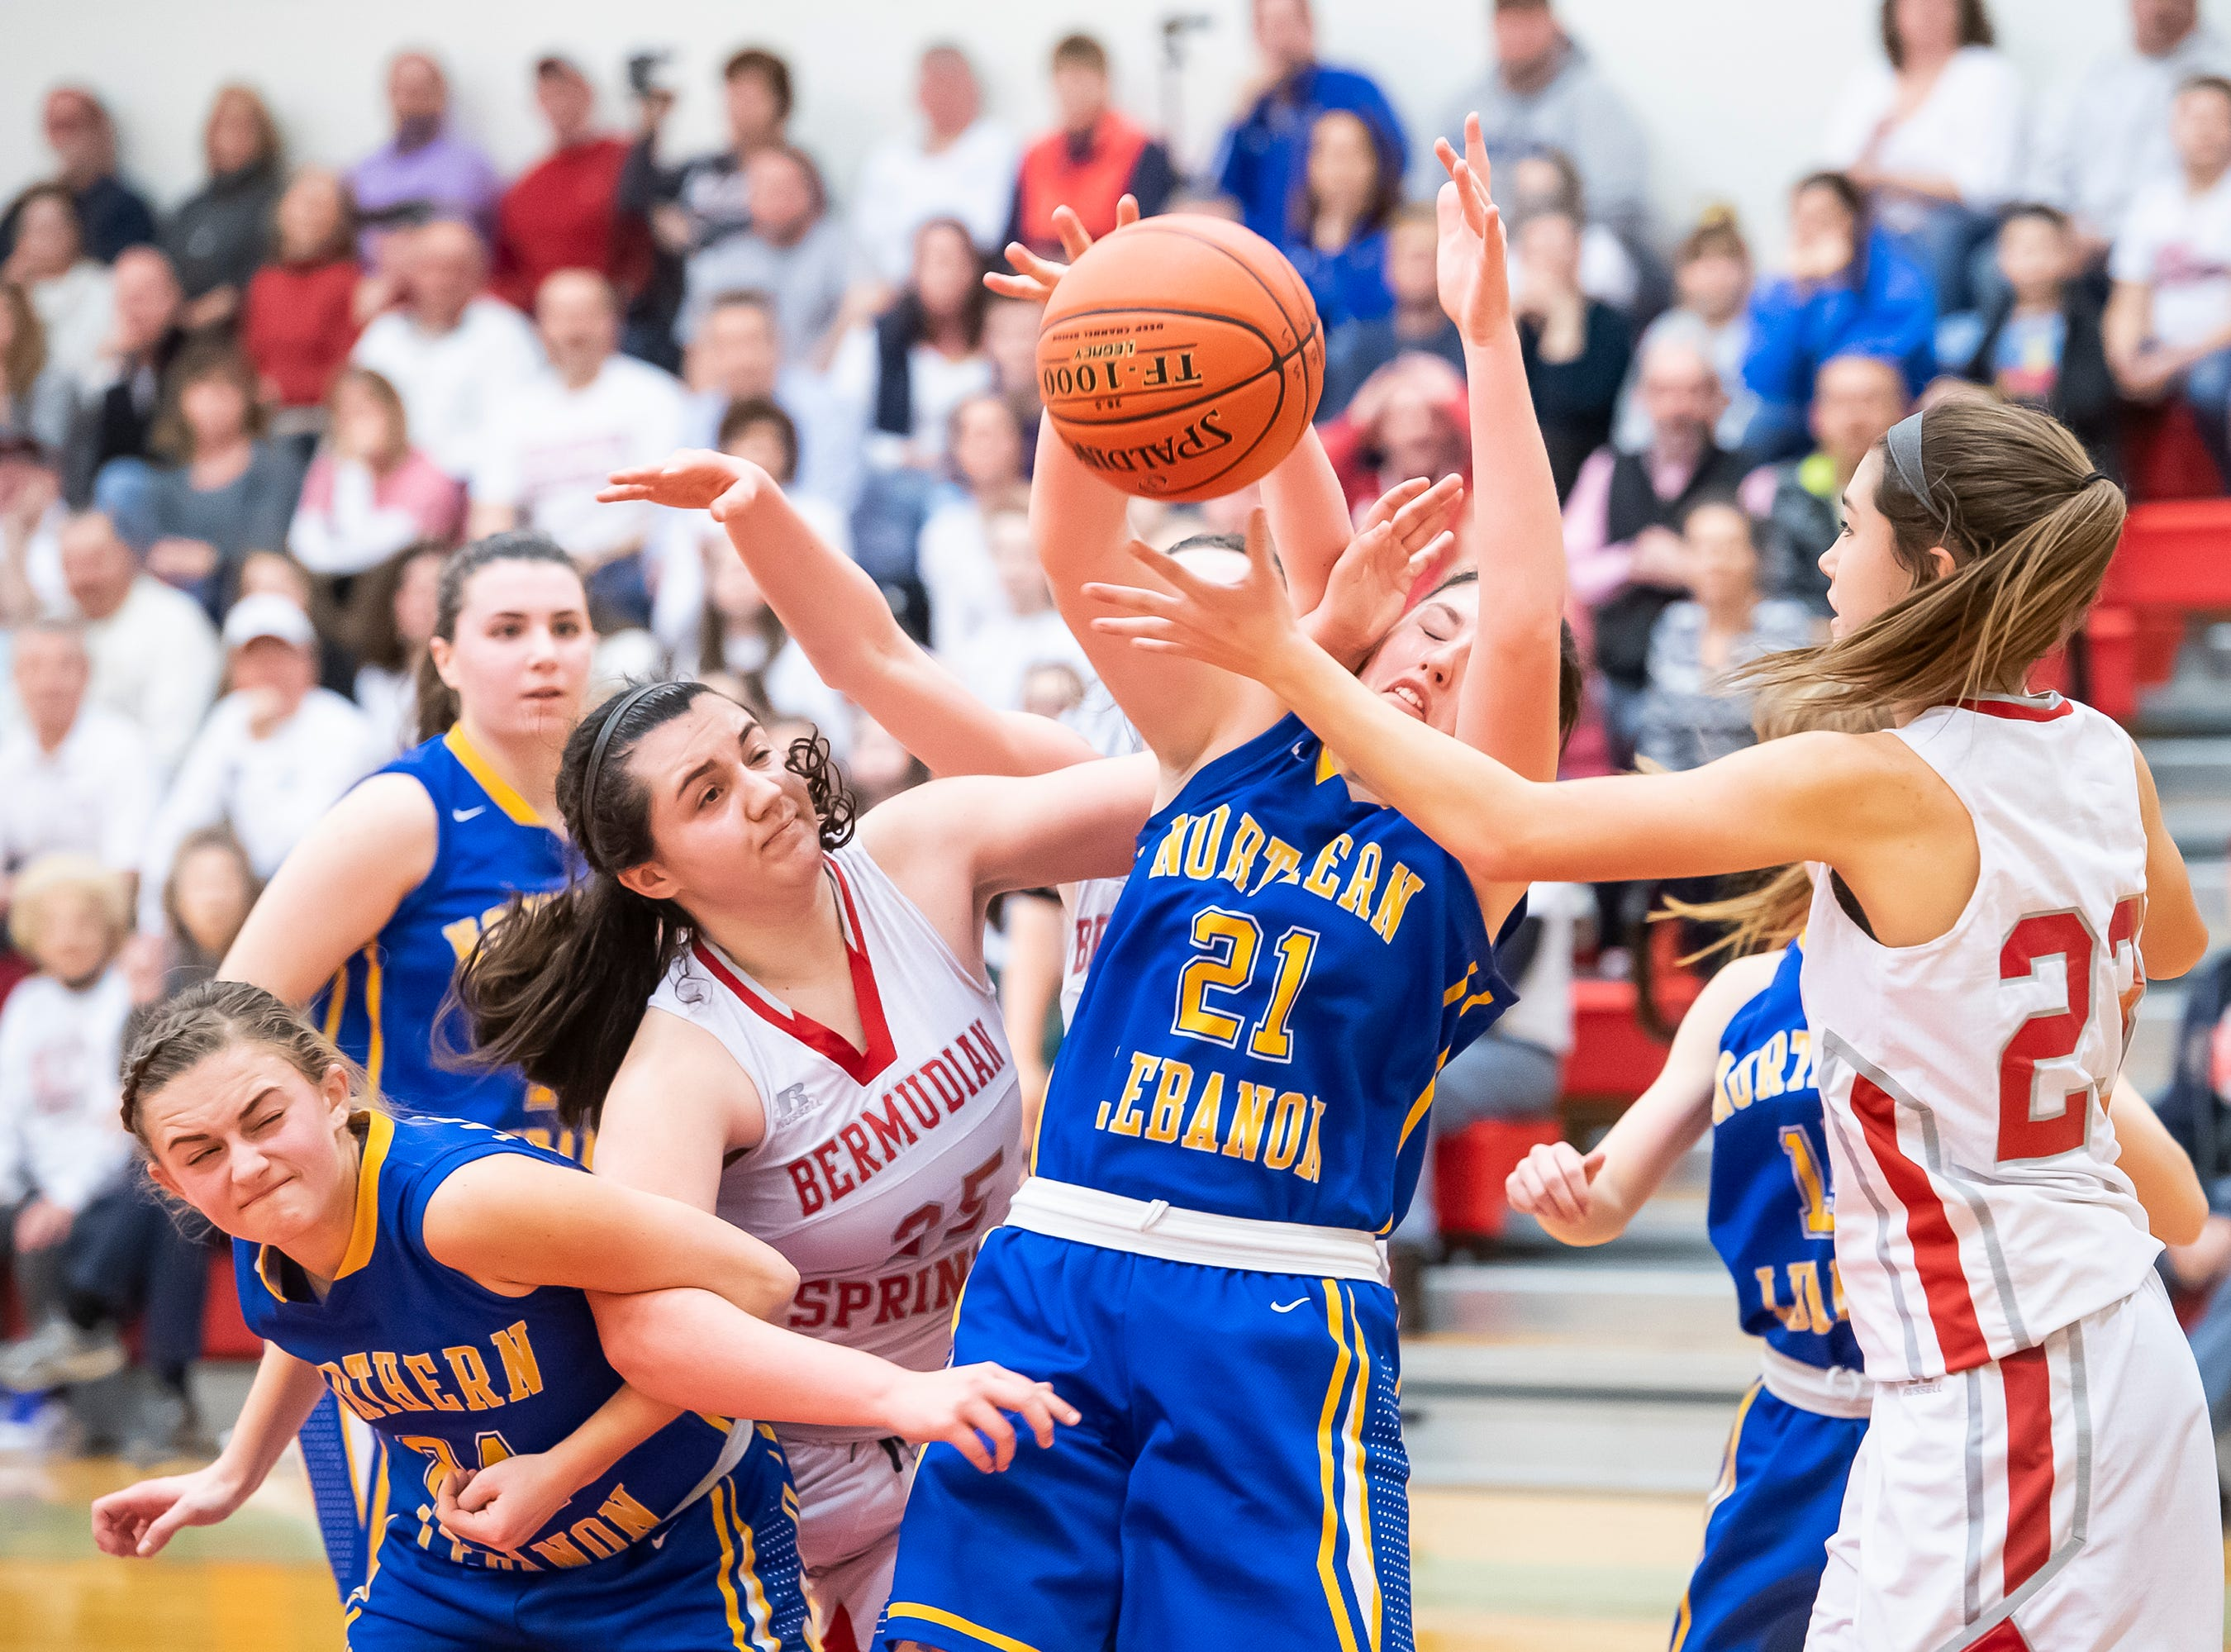 A host of Bermudian Springs and Northern Lebanon players try to pull down a rebound in the first round of the District III 4-A playoffs Tuesday, February 19, 2019. The Eagles won 58-52.